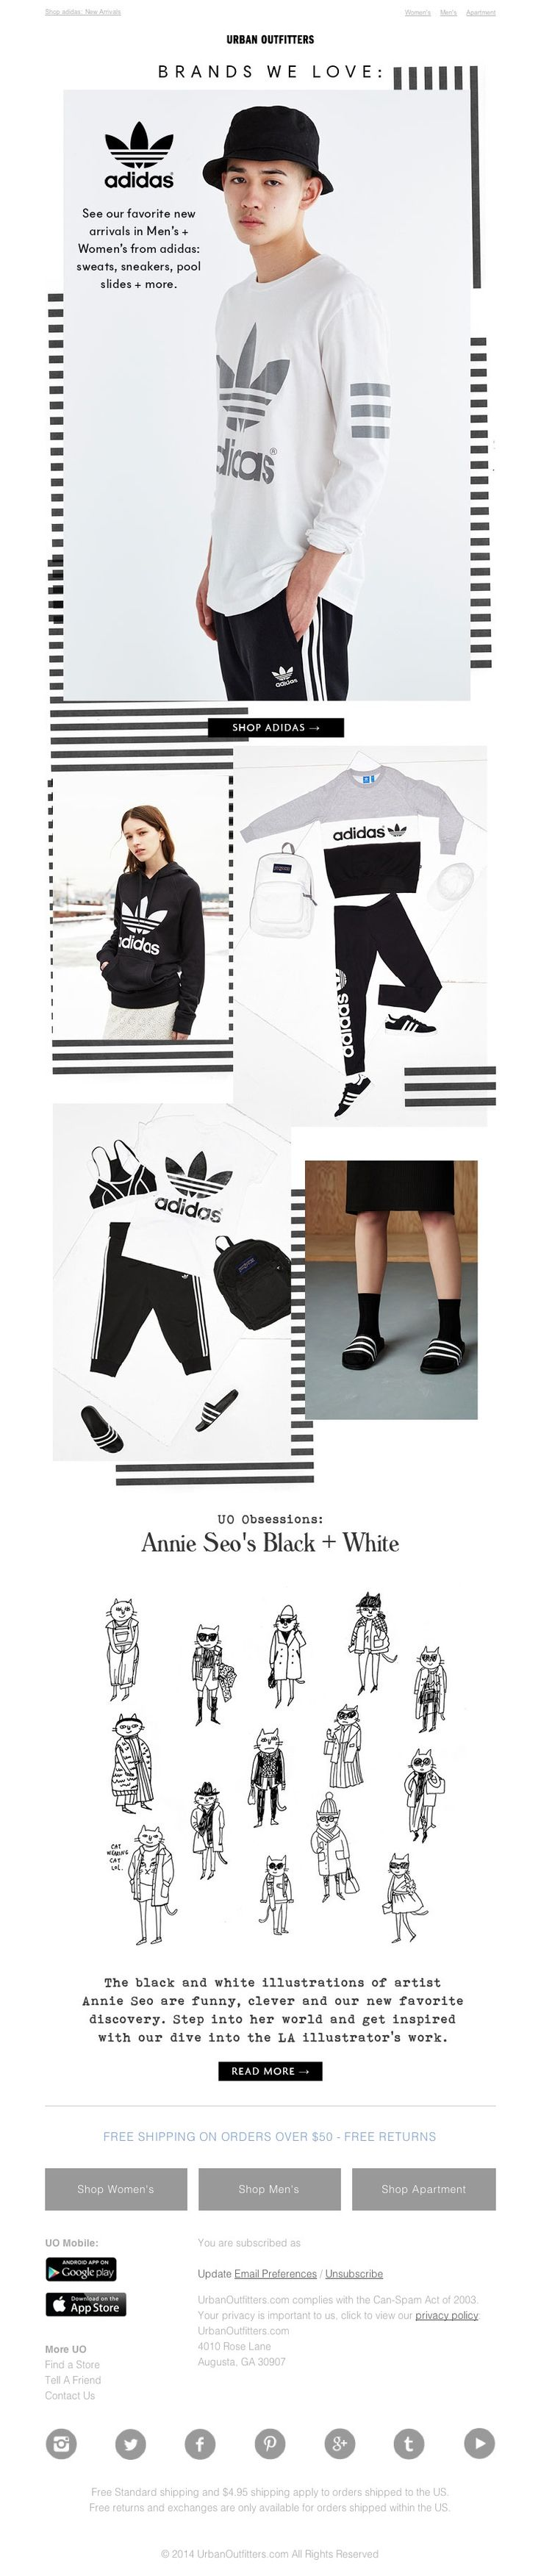 Urban Outfitters - ☰ Earn your (adidas) stripes ☰